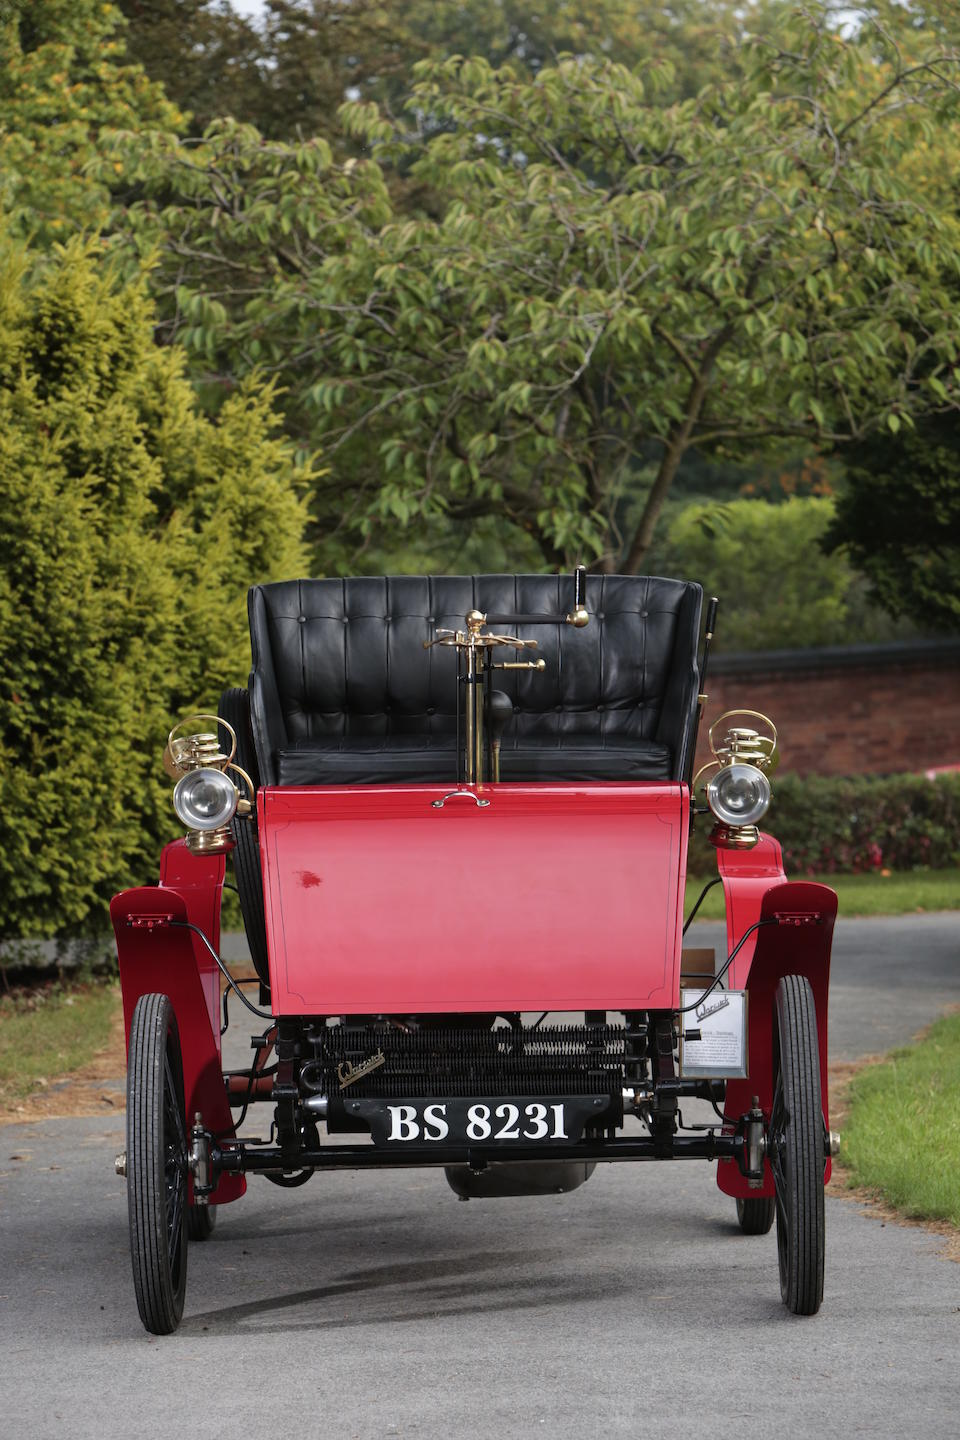 1902 Warwick 6hp Four-seater Stanhope  Engine no. 8460